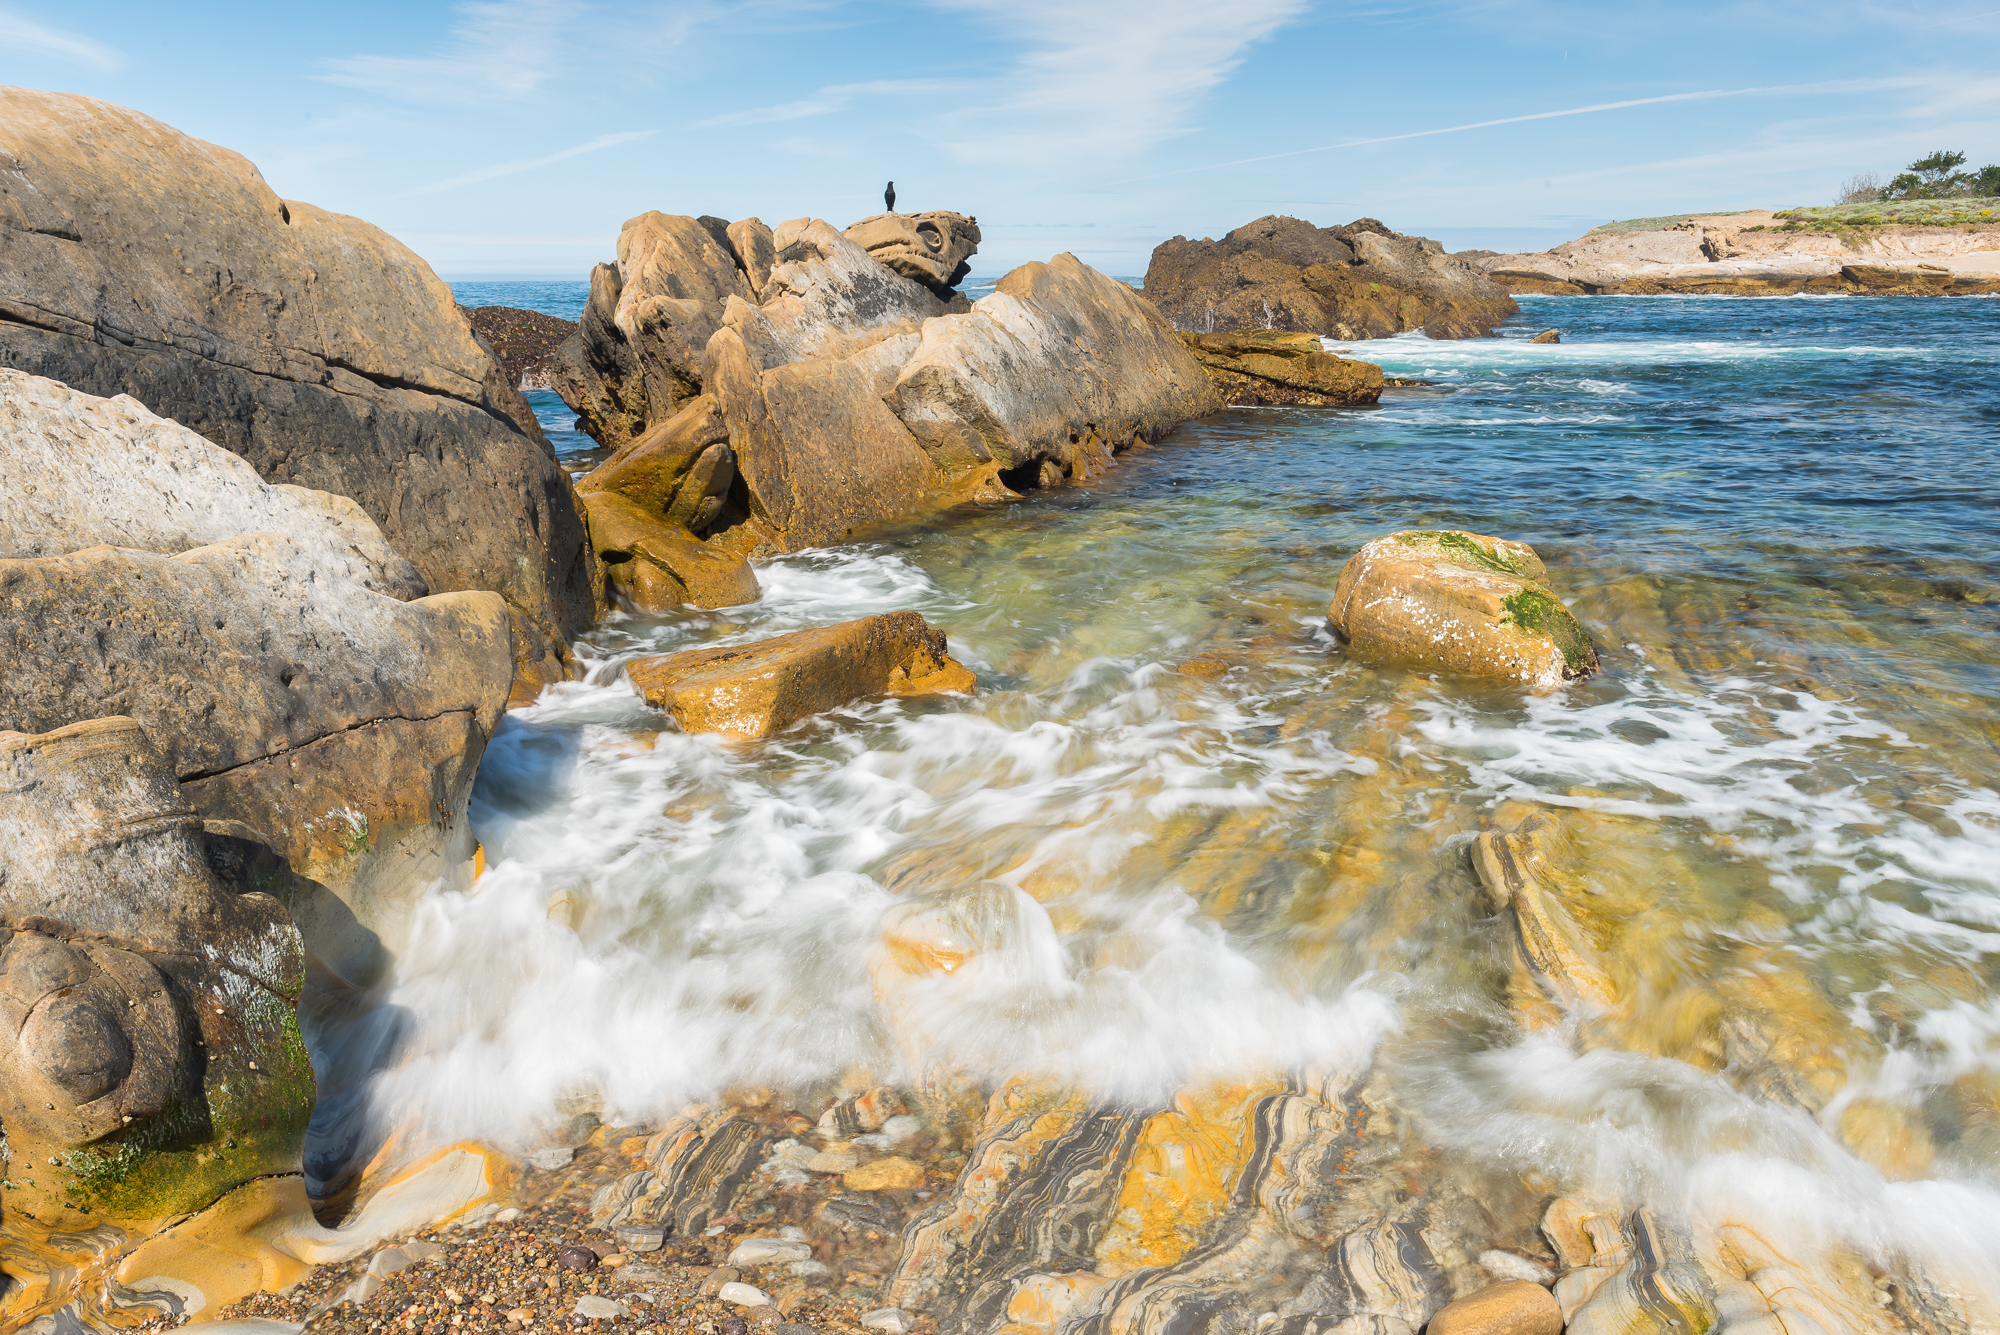 Incoming tide at Weston Beach. Point Lobos Reserve, CA.